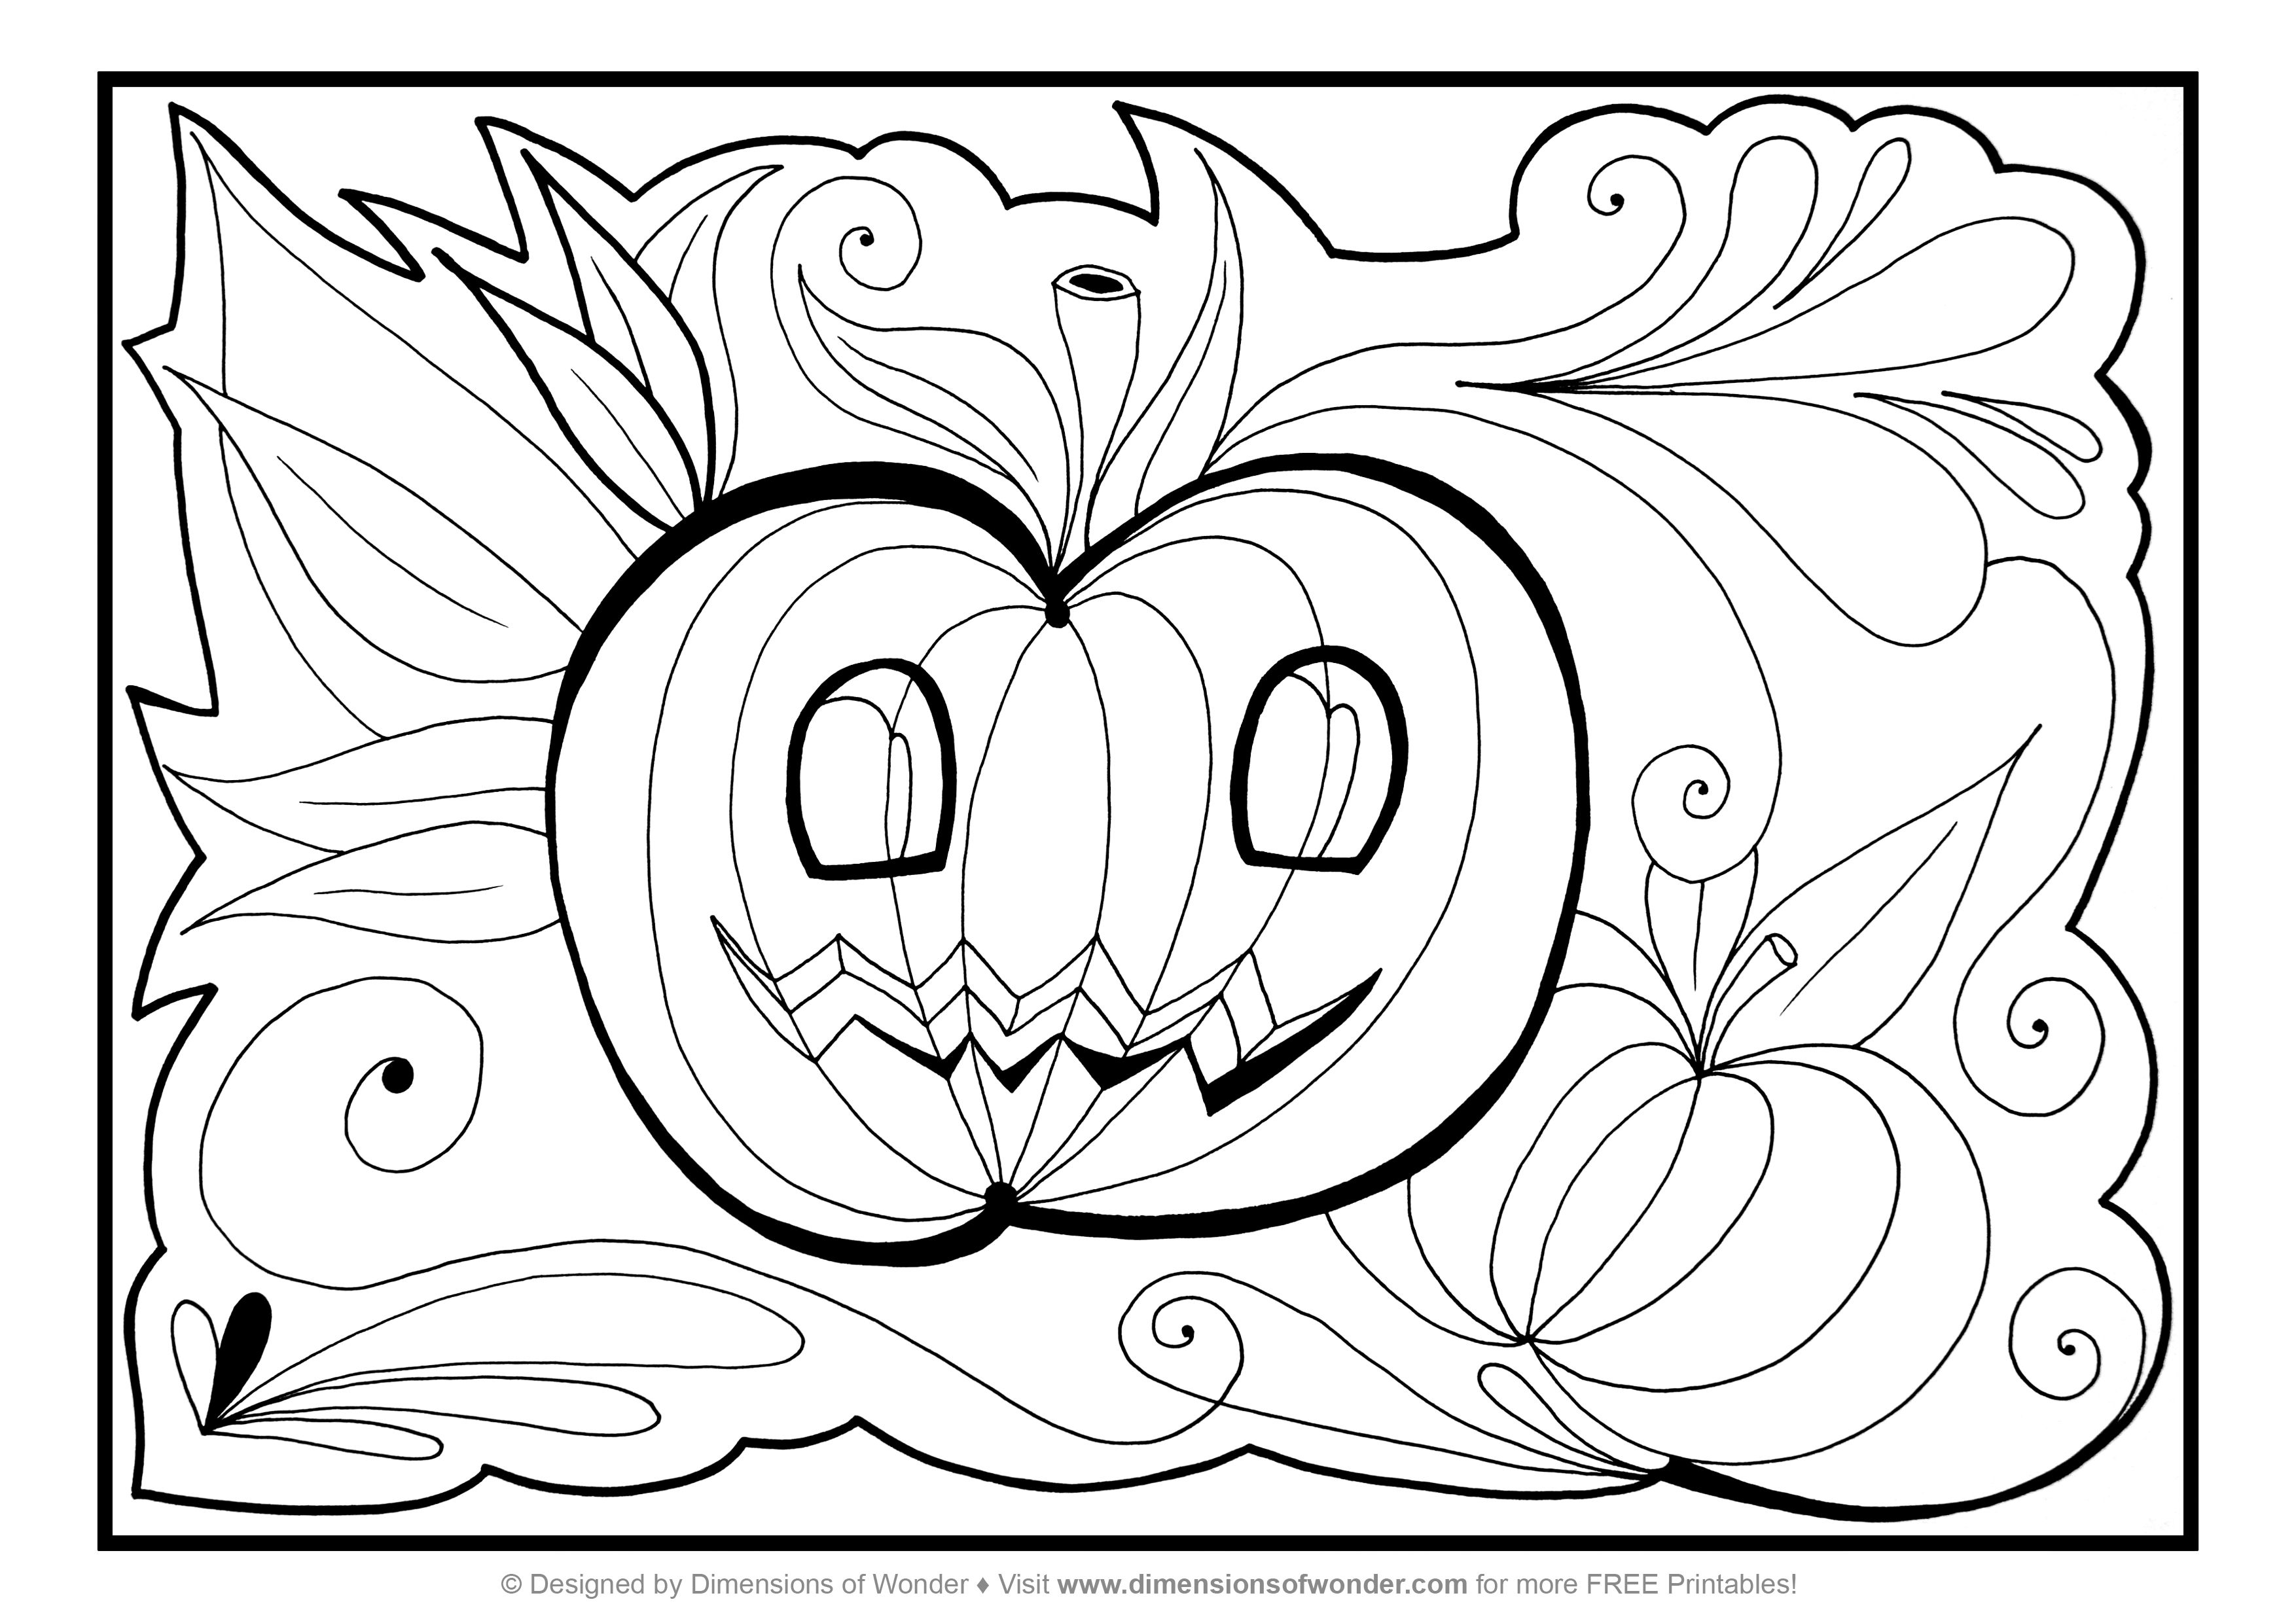 Free printable halloween coloring pages suitable for toddlers and ...